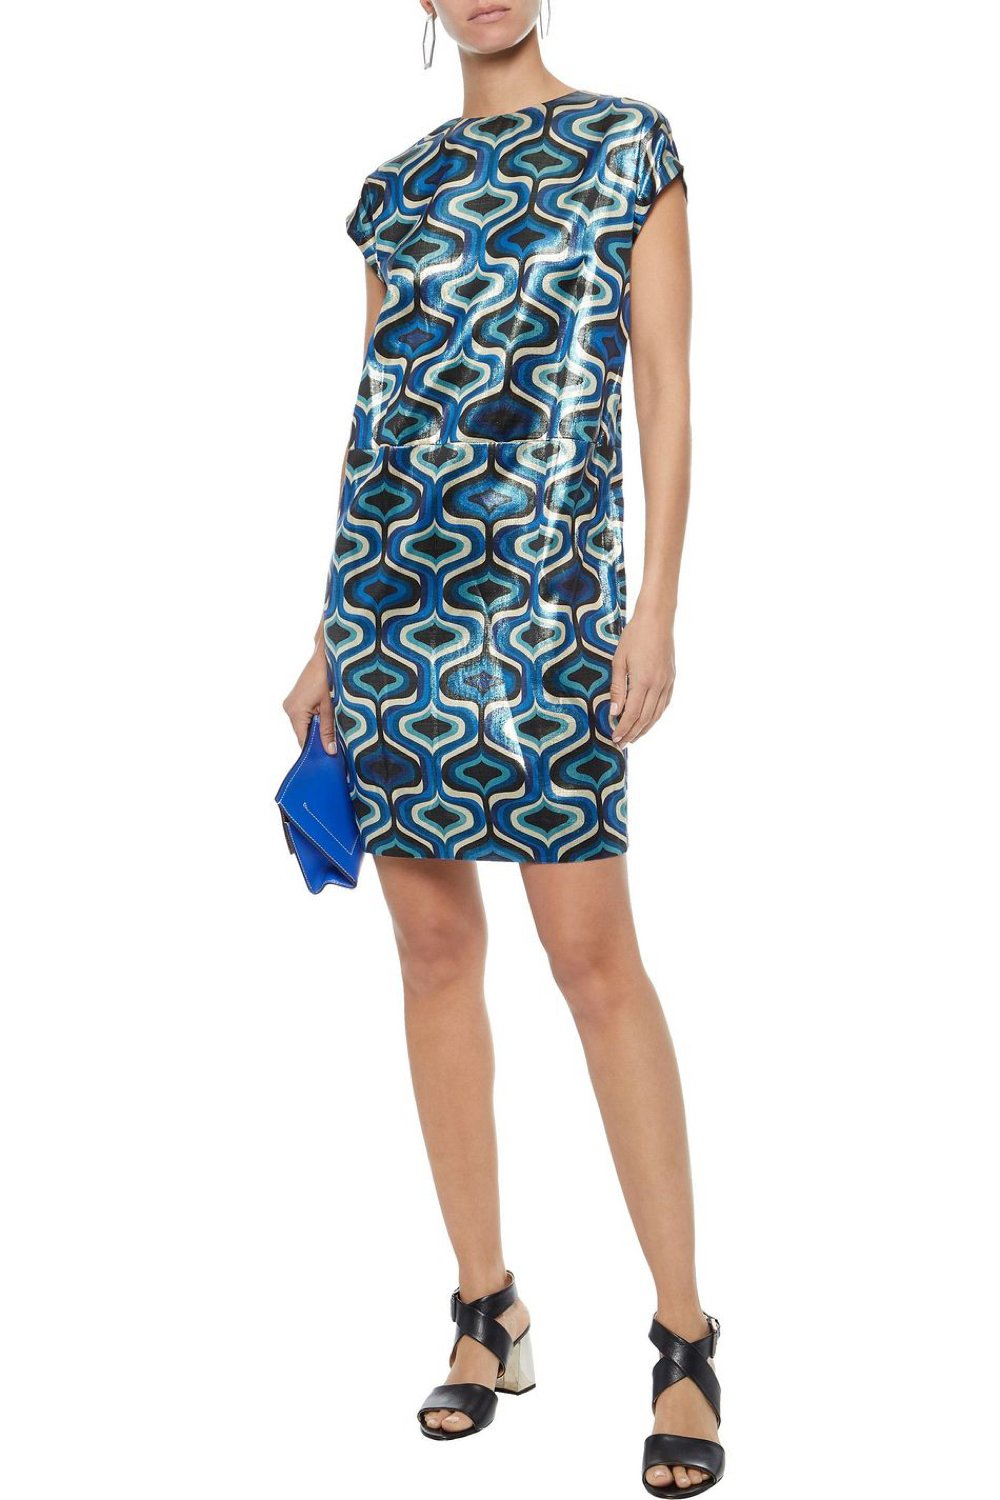 Blue Printed Lamé Flared Dress - The Bobby Boga